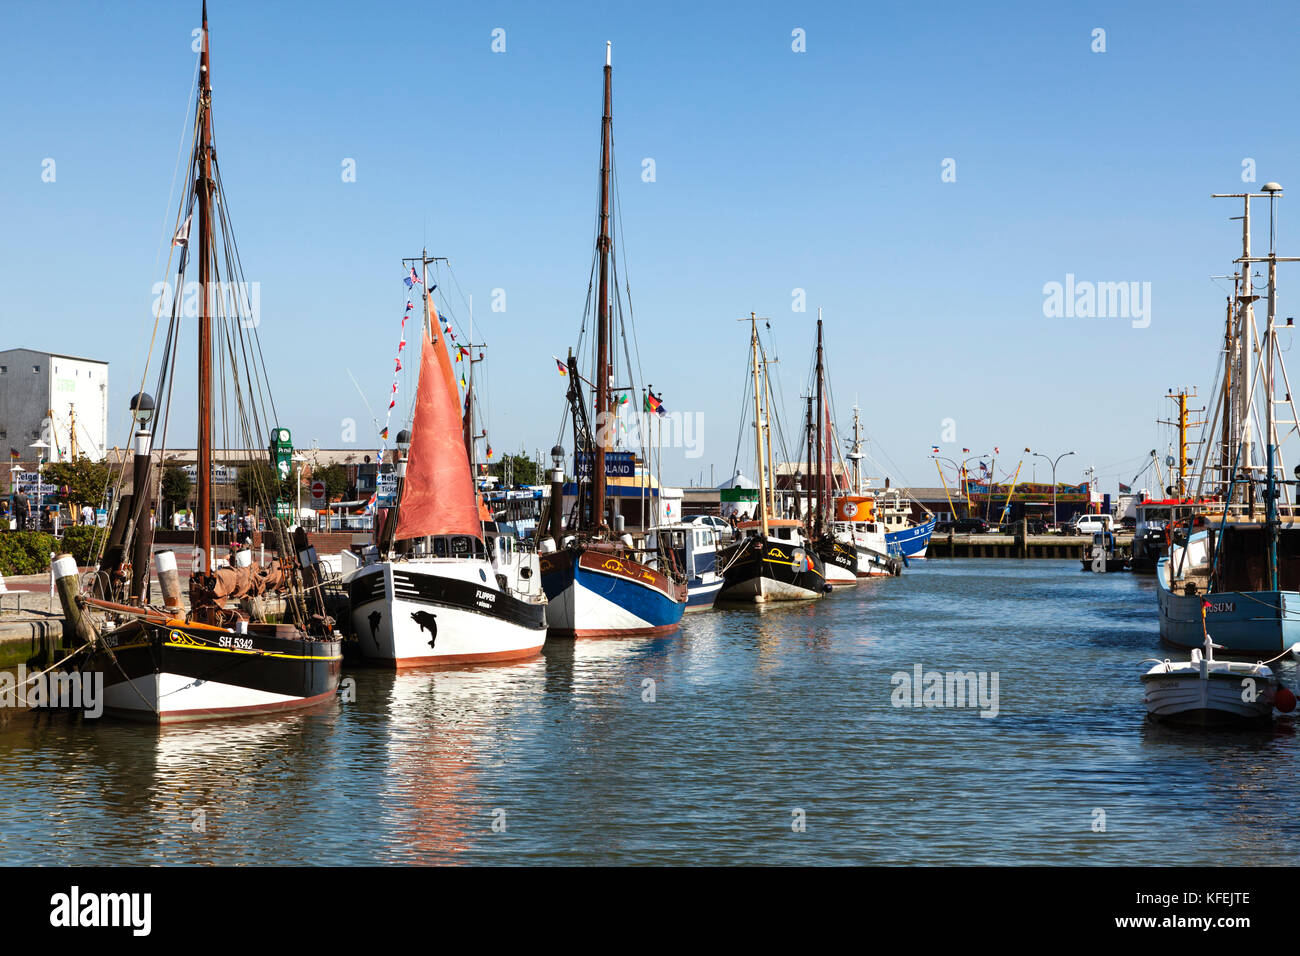 Fishing boats at the port of Büsum, Schleswig-Holstein, Germany - Stock Image